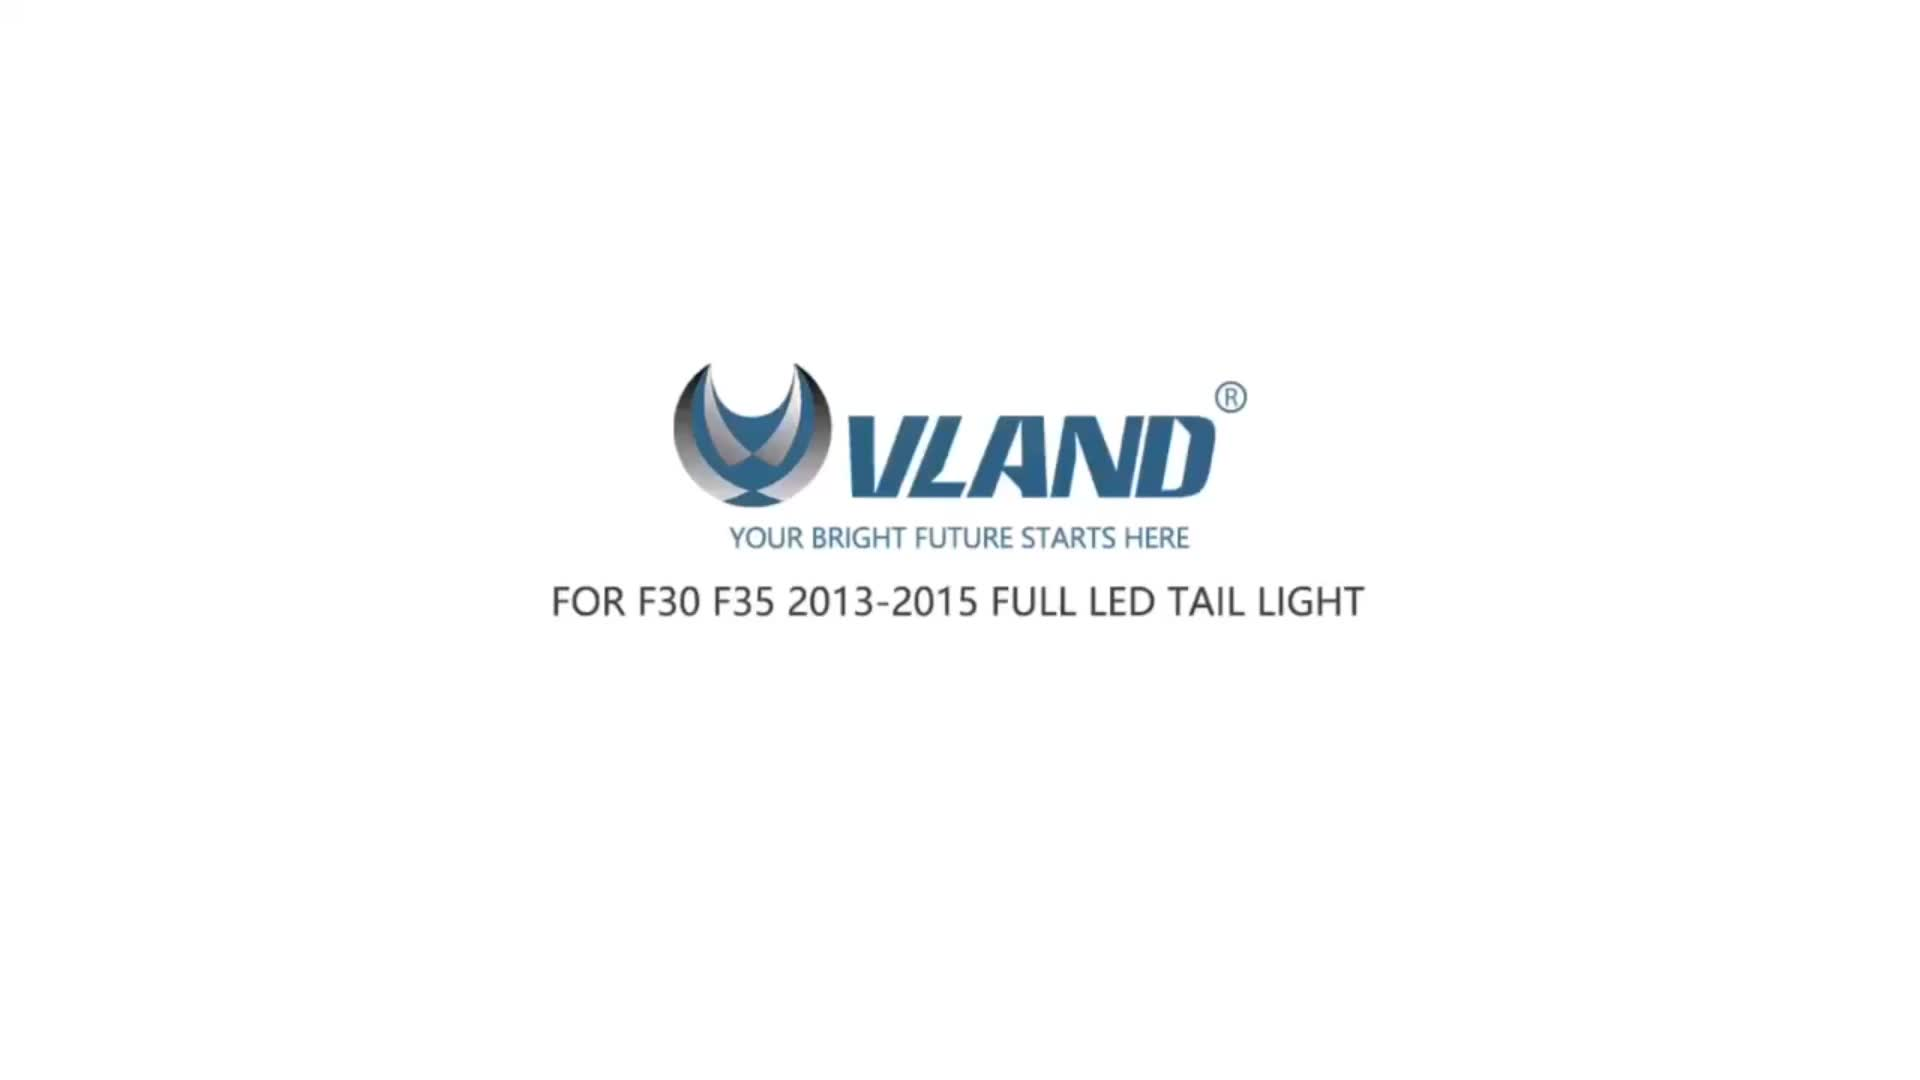 VLAND factory E-mark Full Led Rear Lamp for F30 F35 2012-2015 Tail Lamp Turn Signal with Sequential Indicator Tail Light